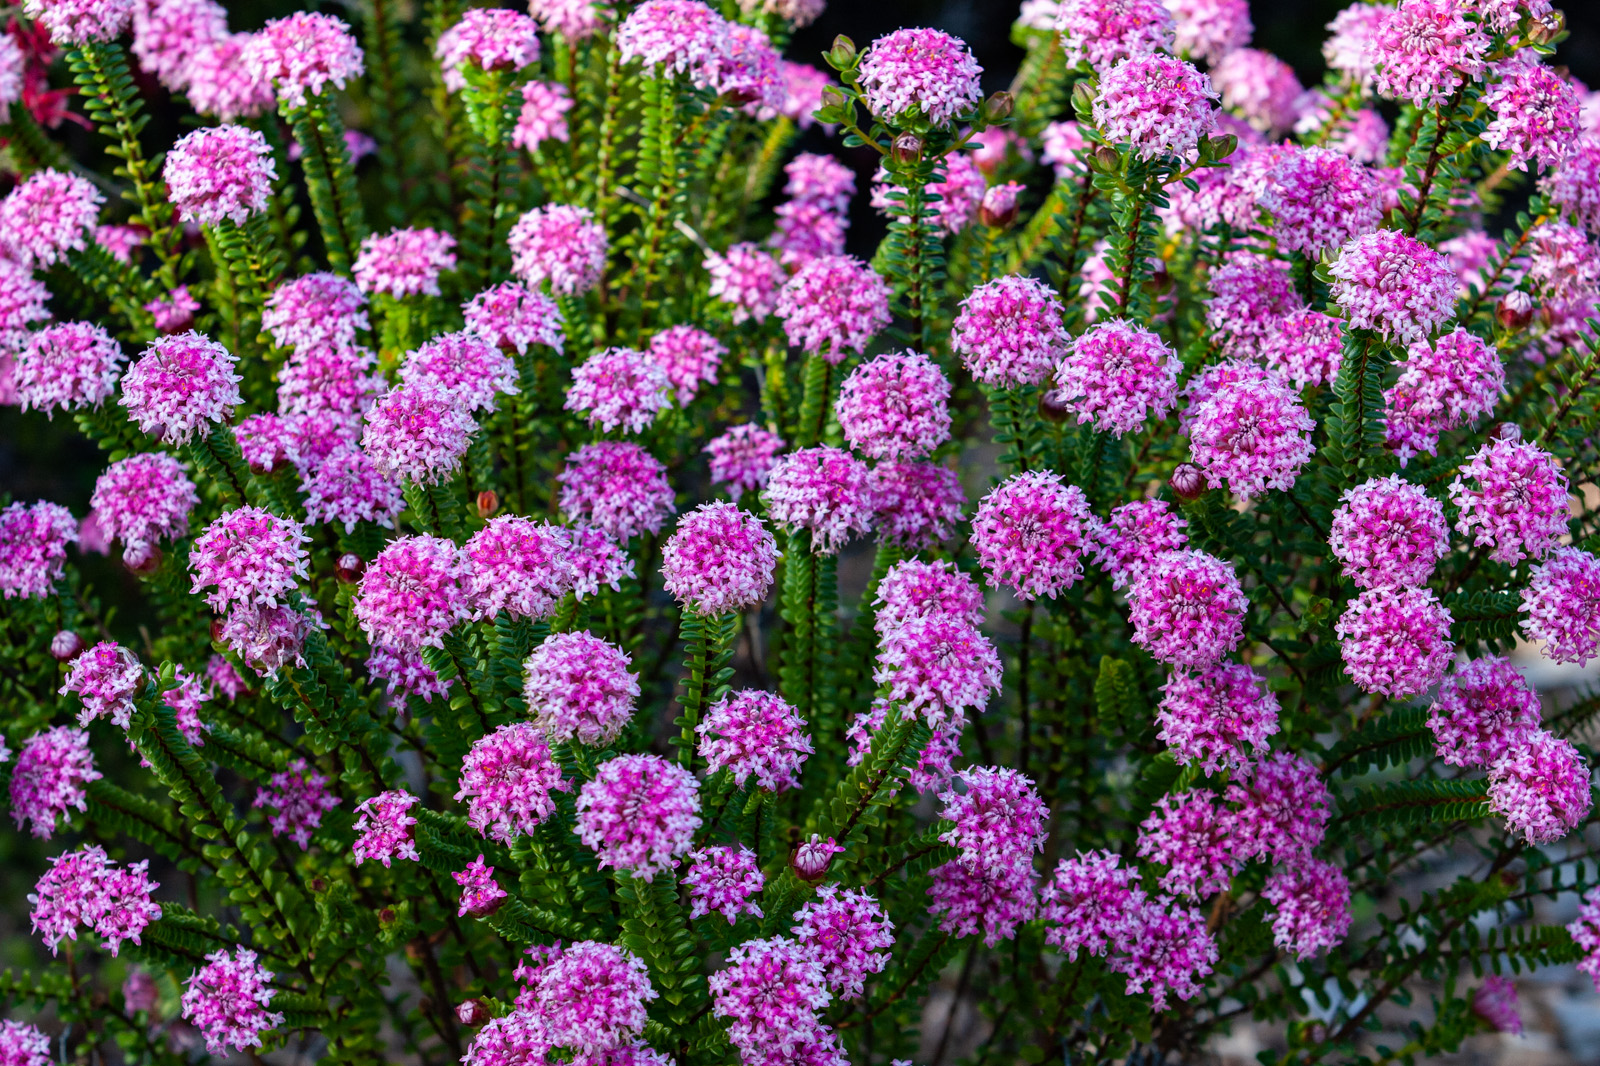 A mass of inflorescences on <i>Pimelea ferrugina</i> 'Bonne Petite'